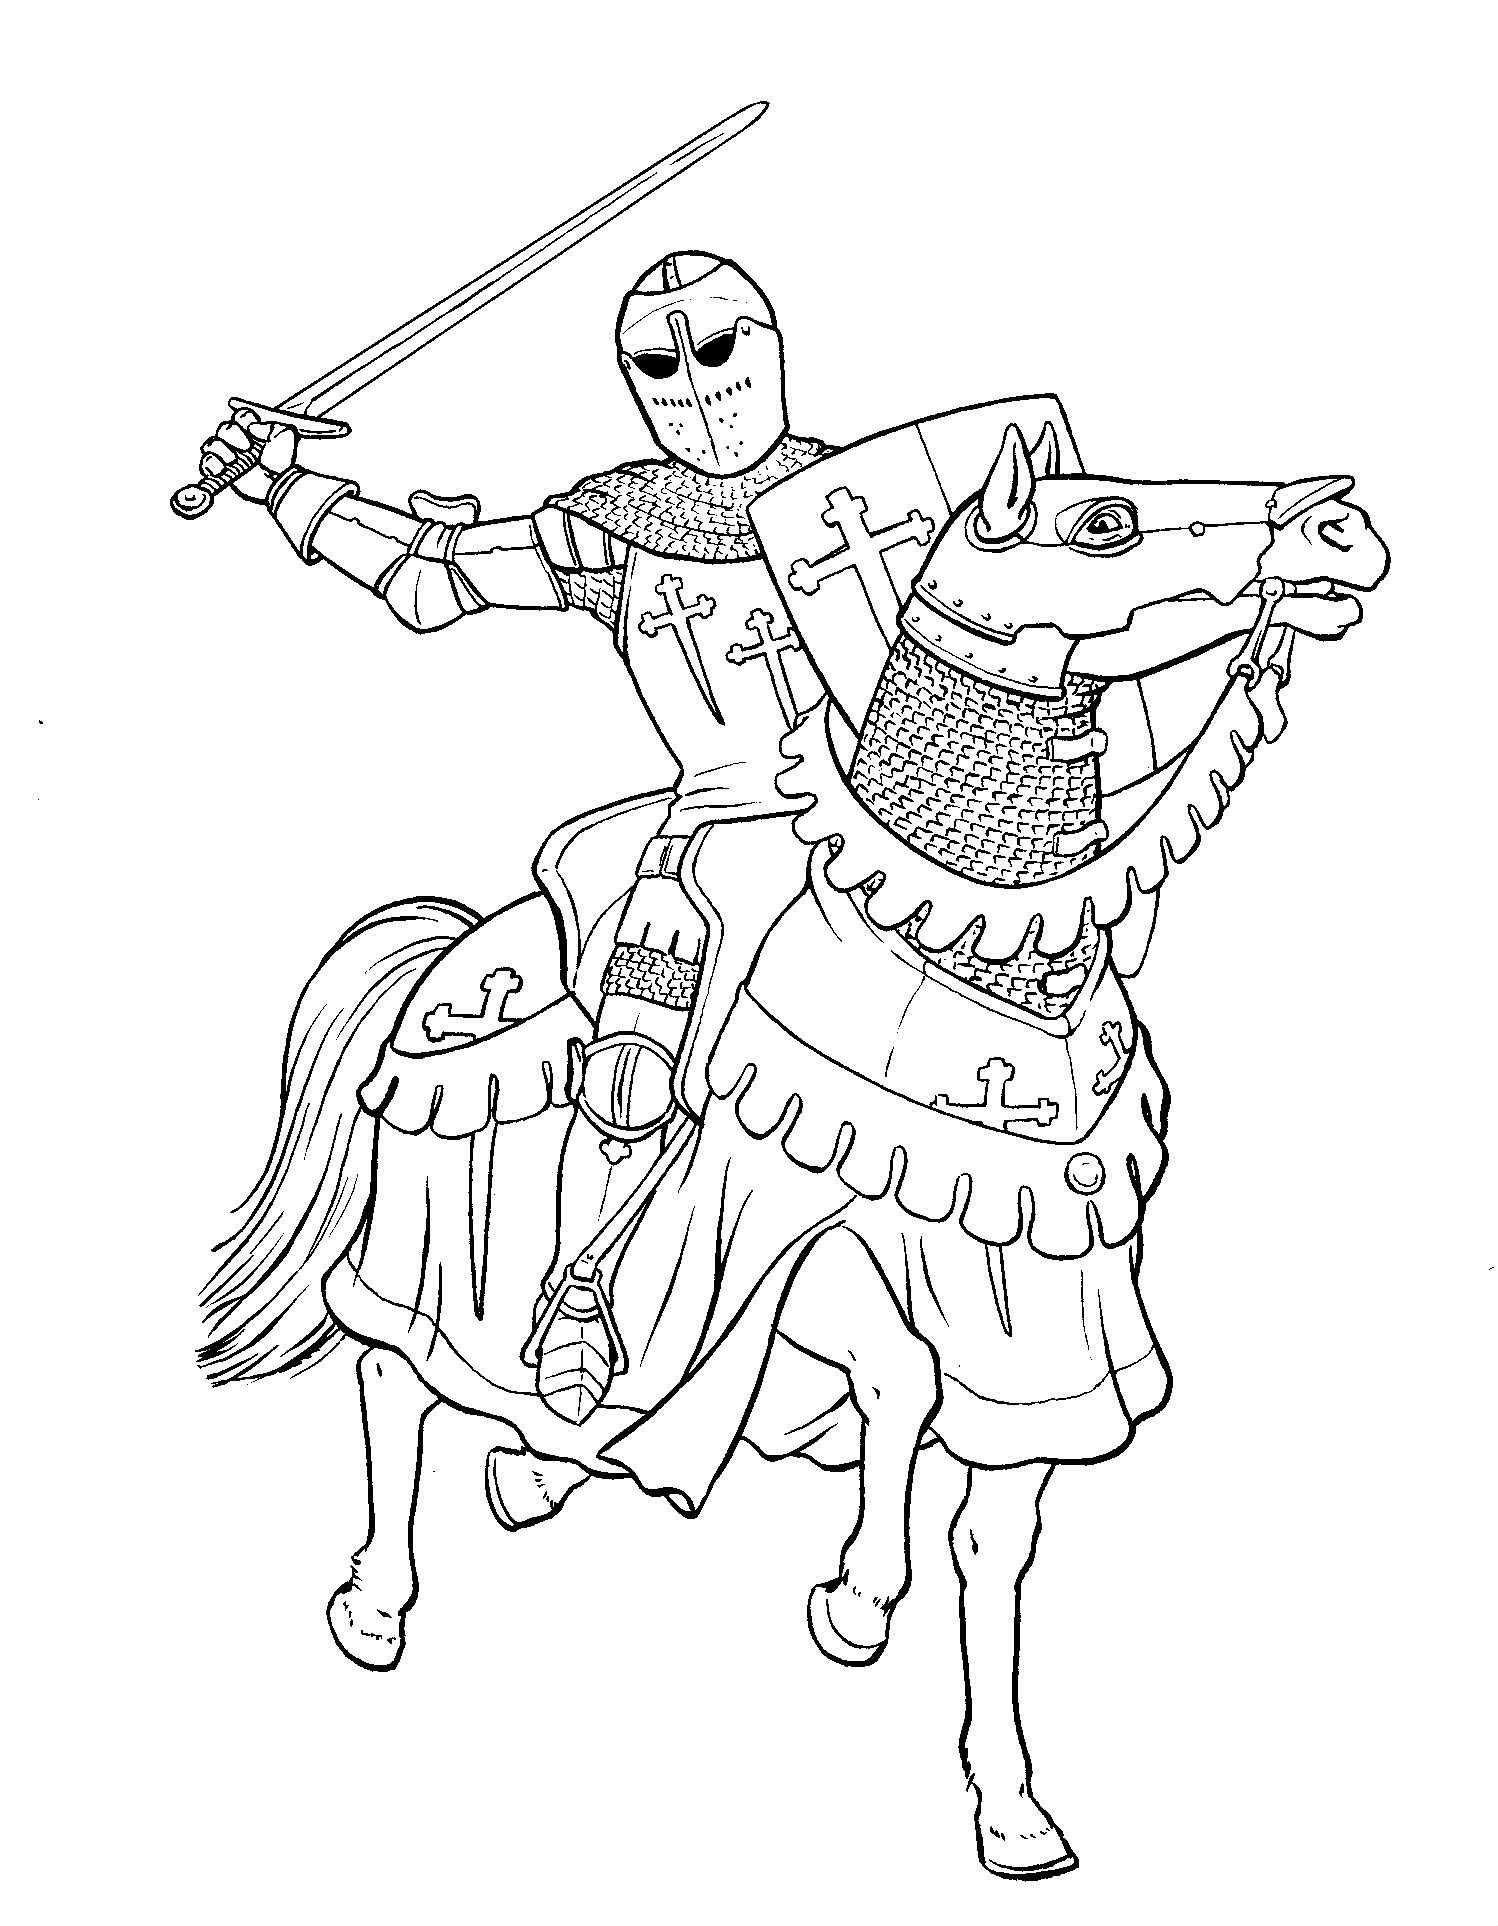 knight on horse coloring page knight on horse coloring page page knight on horse coloring